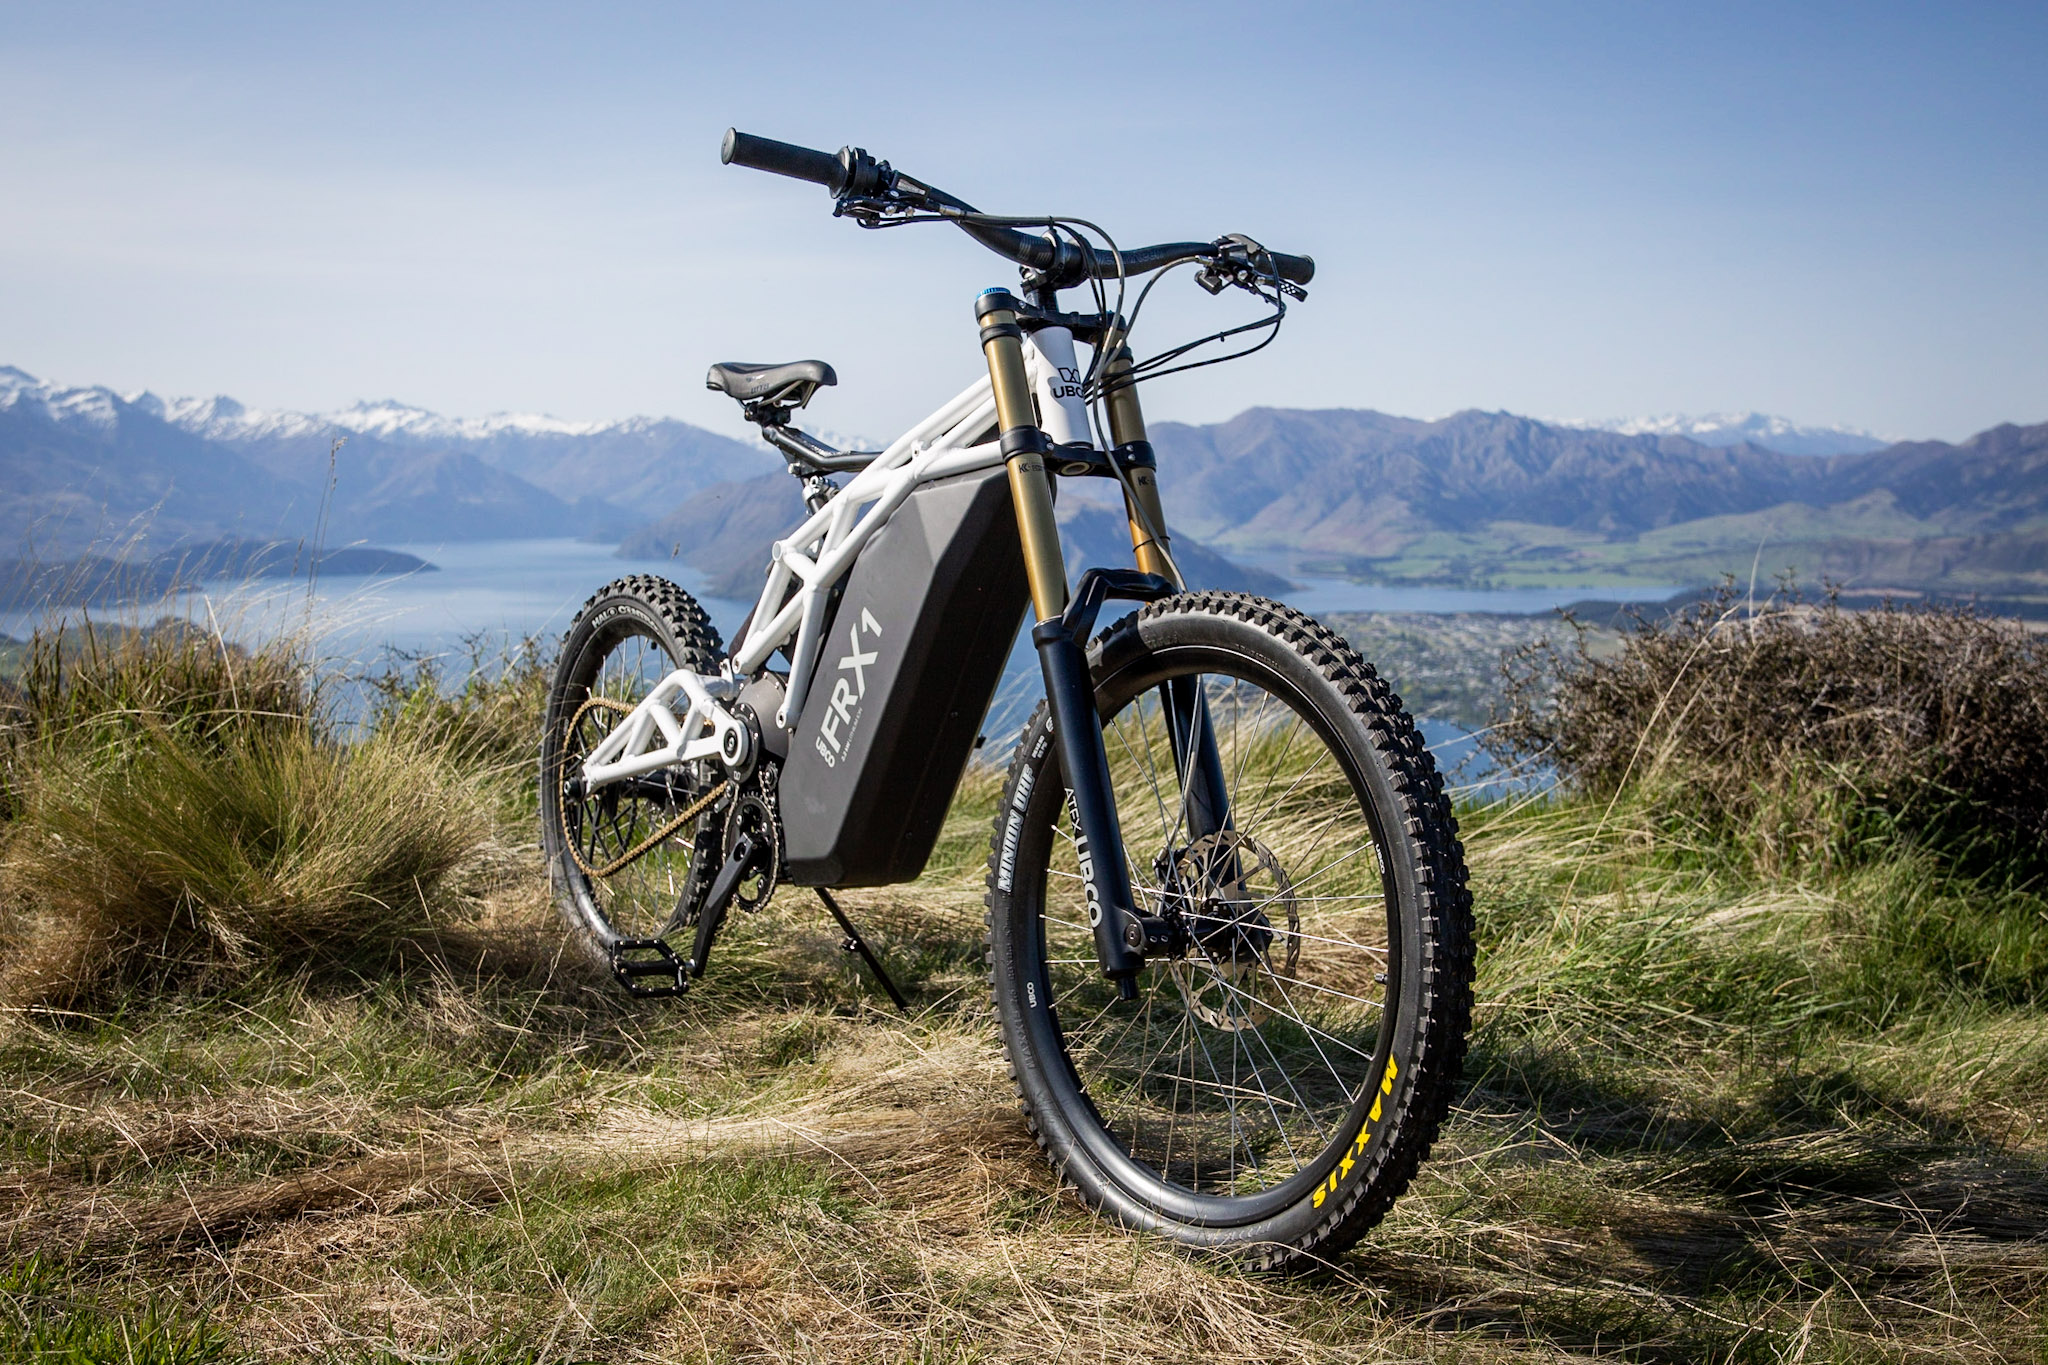 UBCO FRX1 – Electric drive trail bike